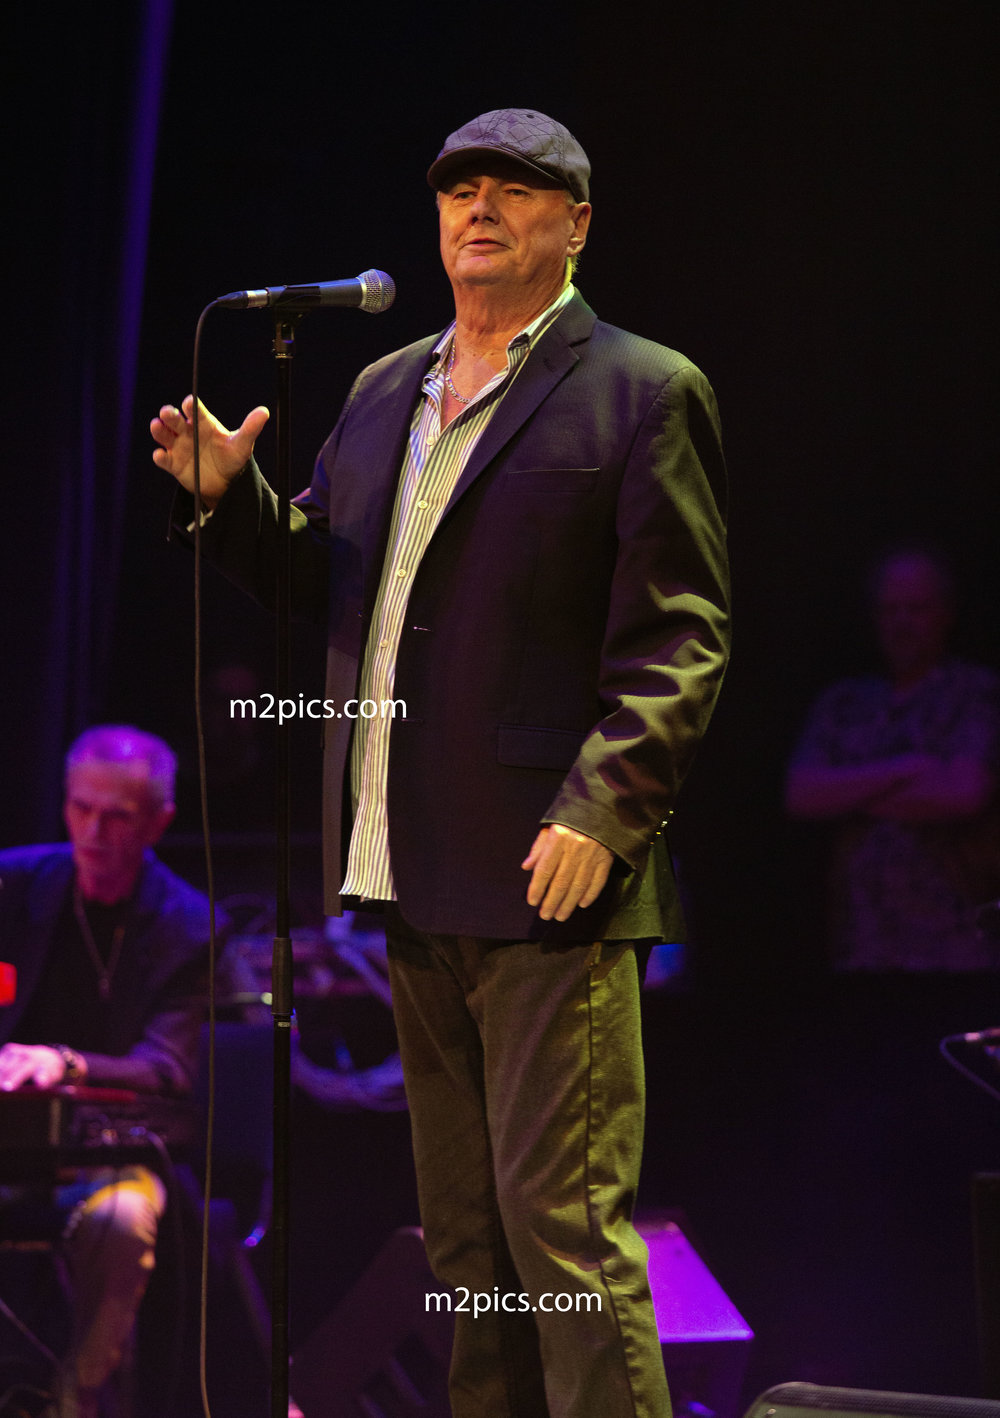 downchild blues band 28-6363 copy 2.jpg